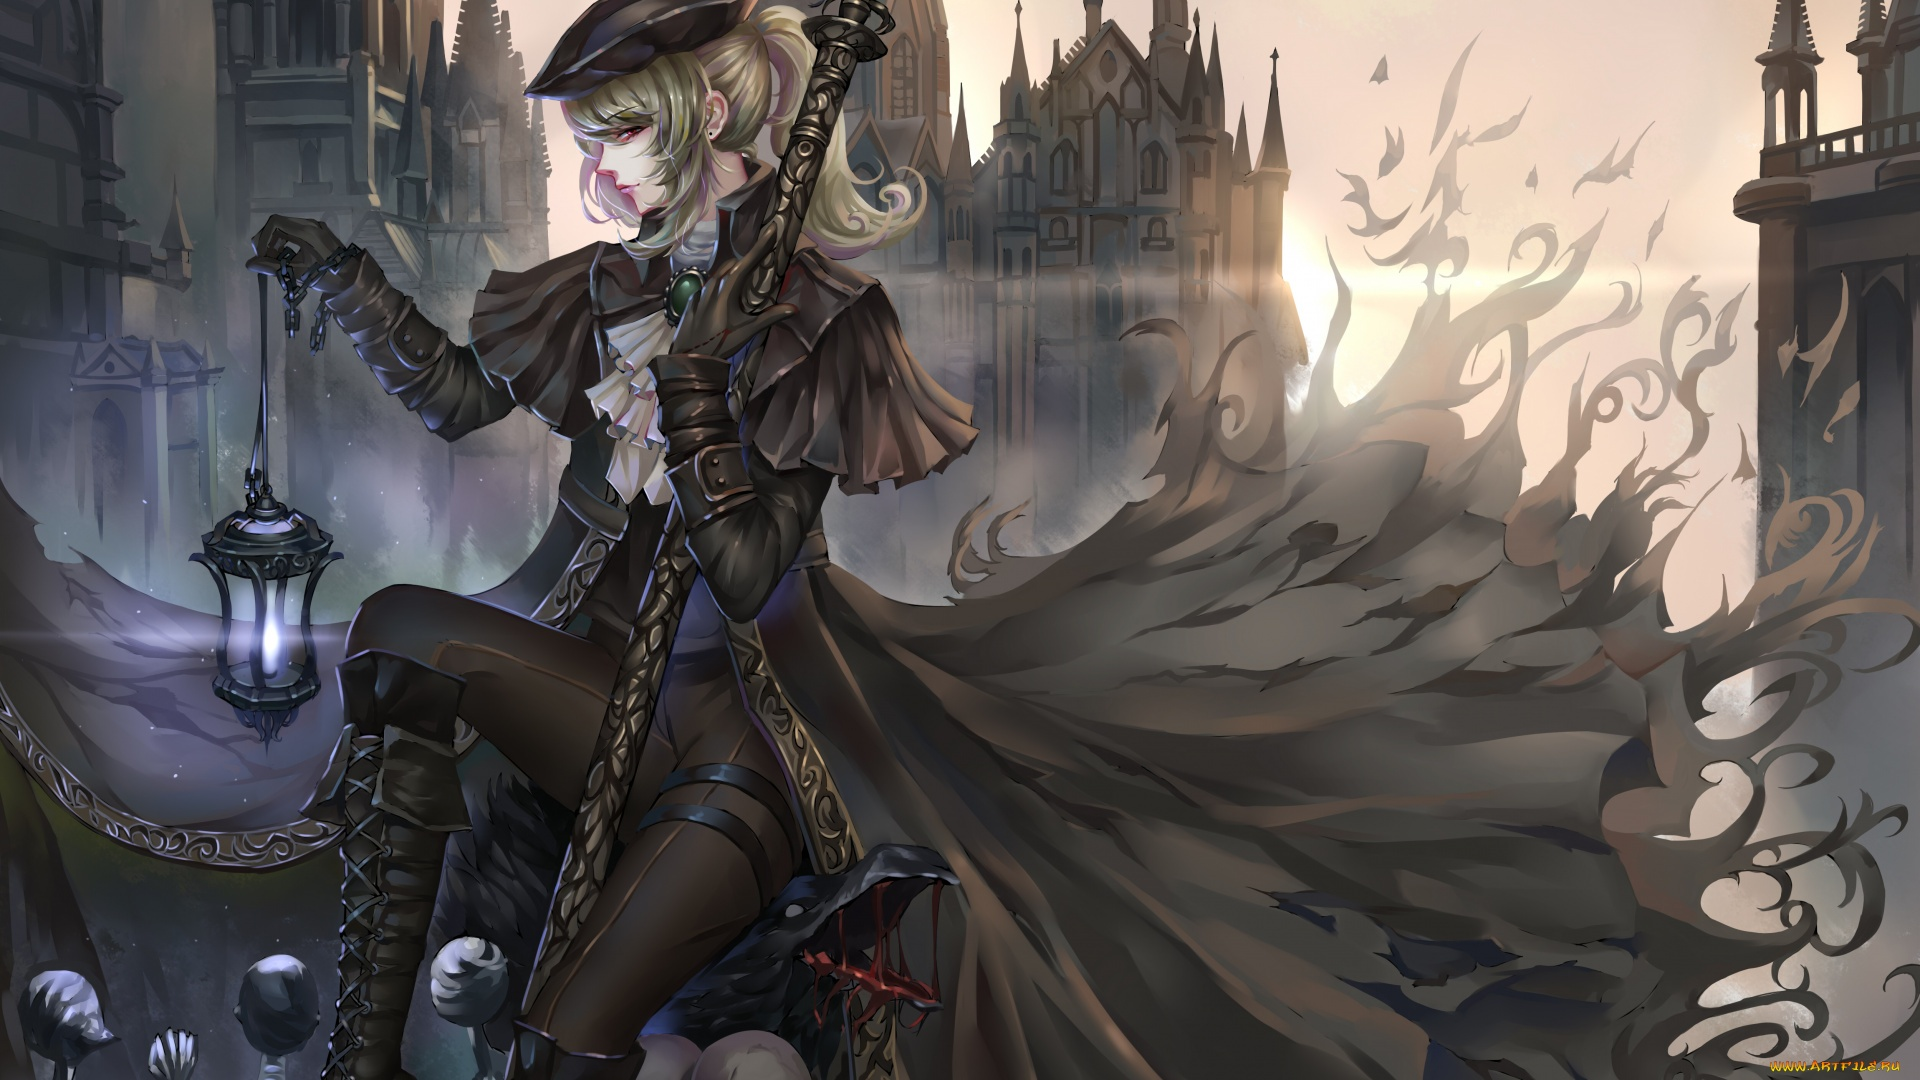 Anime Gothic Girl best picture